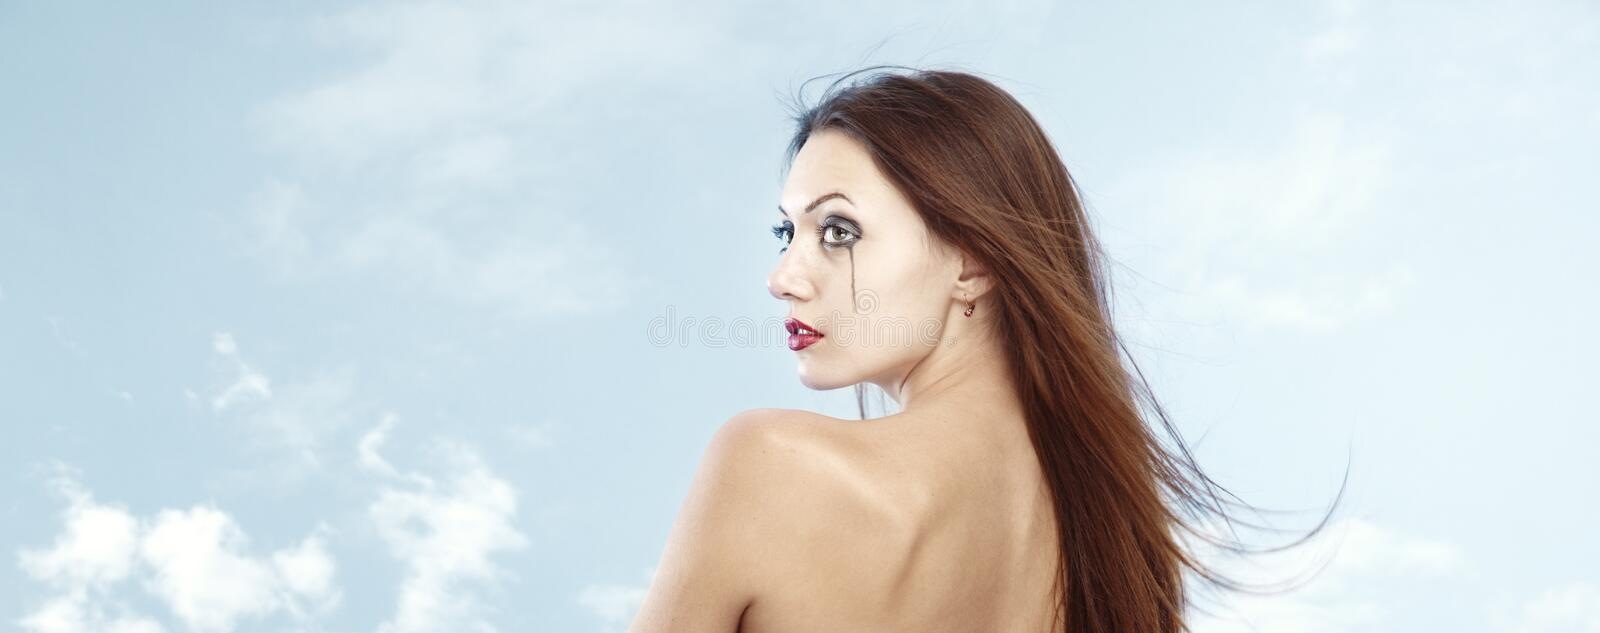 Download Crying sky stock image. Image of drop, pretty, cosmetics - 22126337